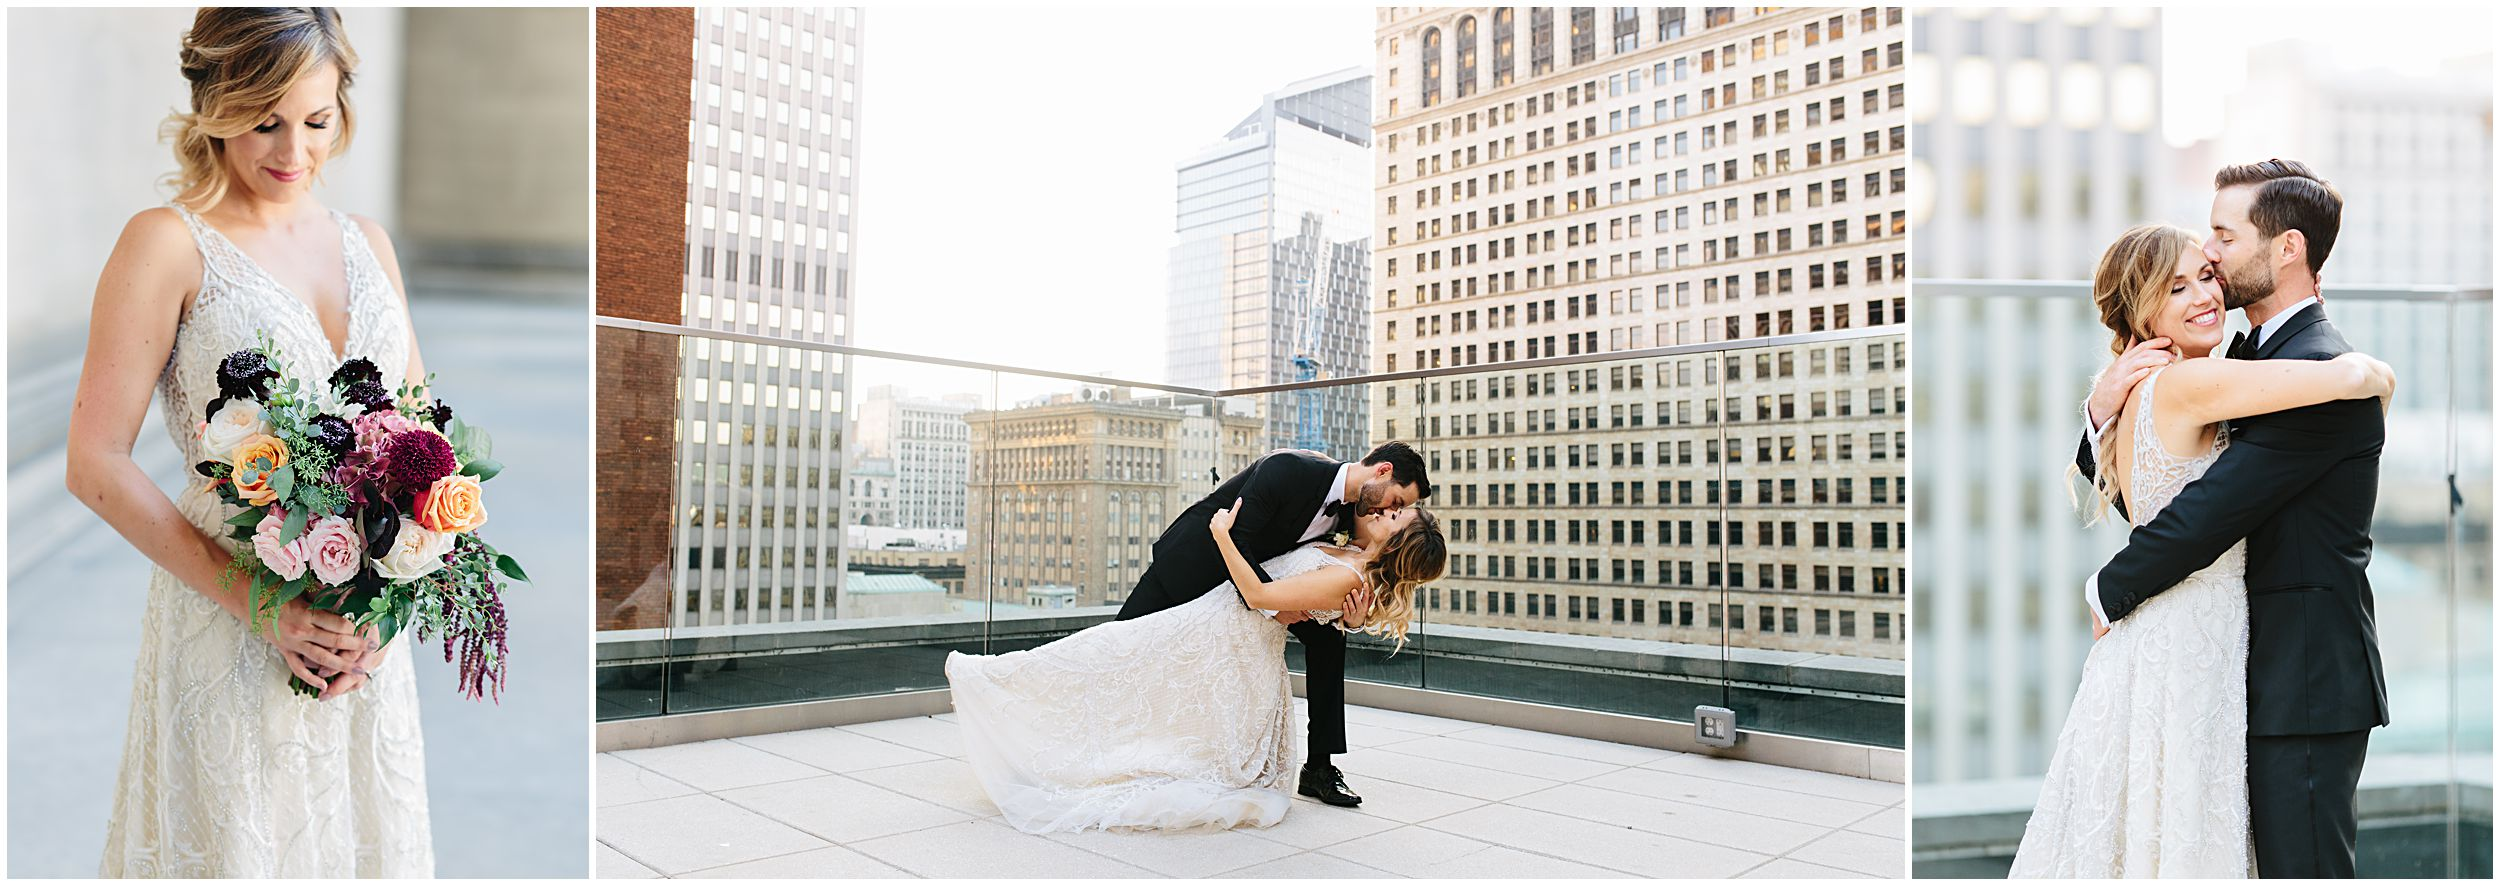 pittsburgh_wedding_photographer_0004.jpg